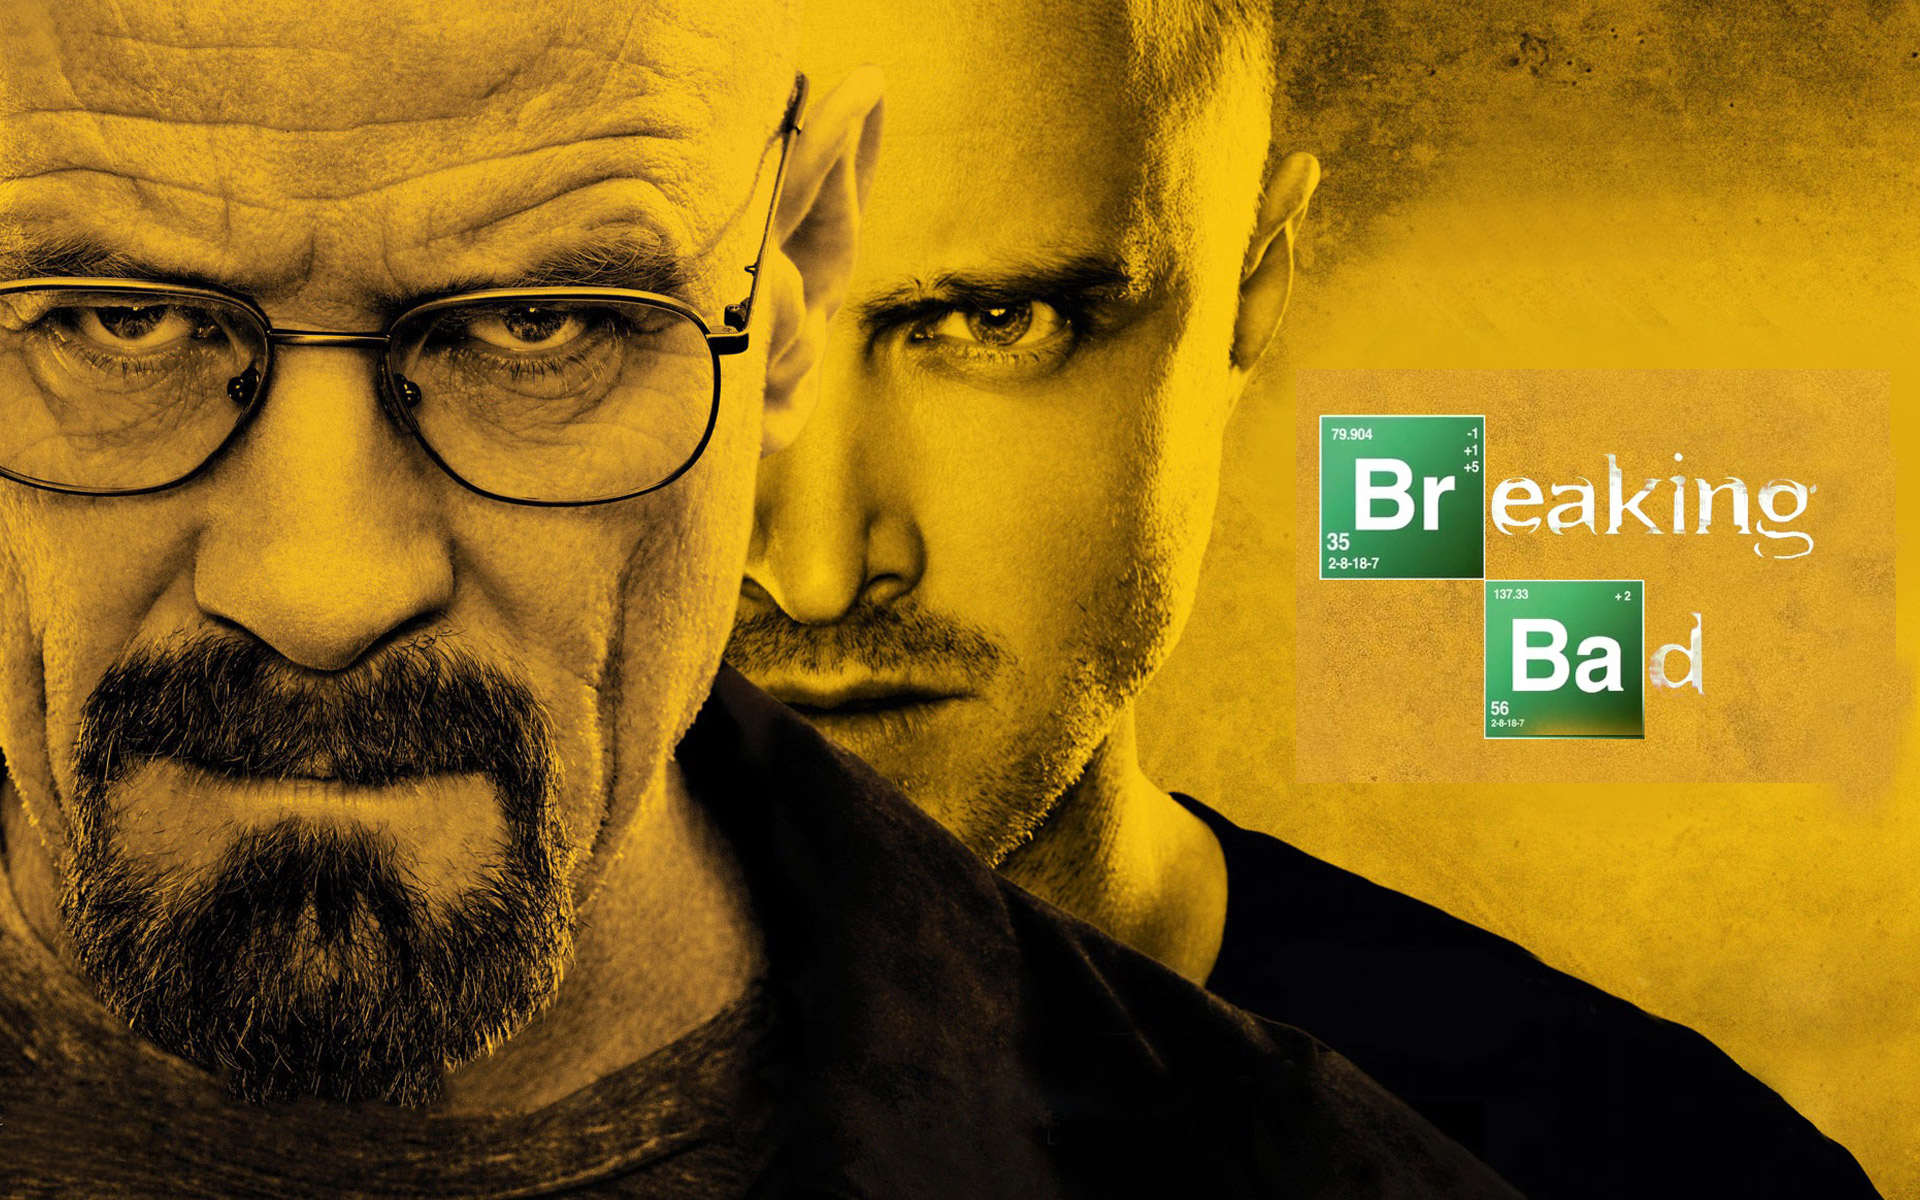 How I Predicted the Breaking Bad Ending